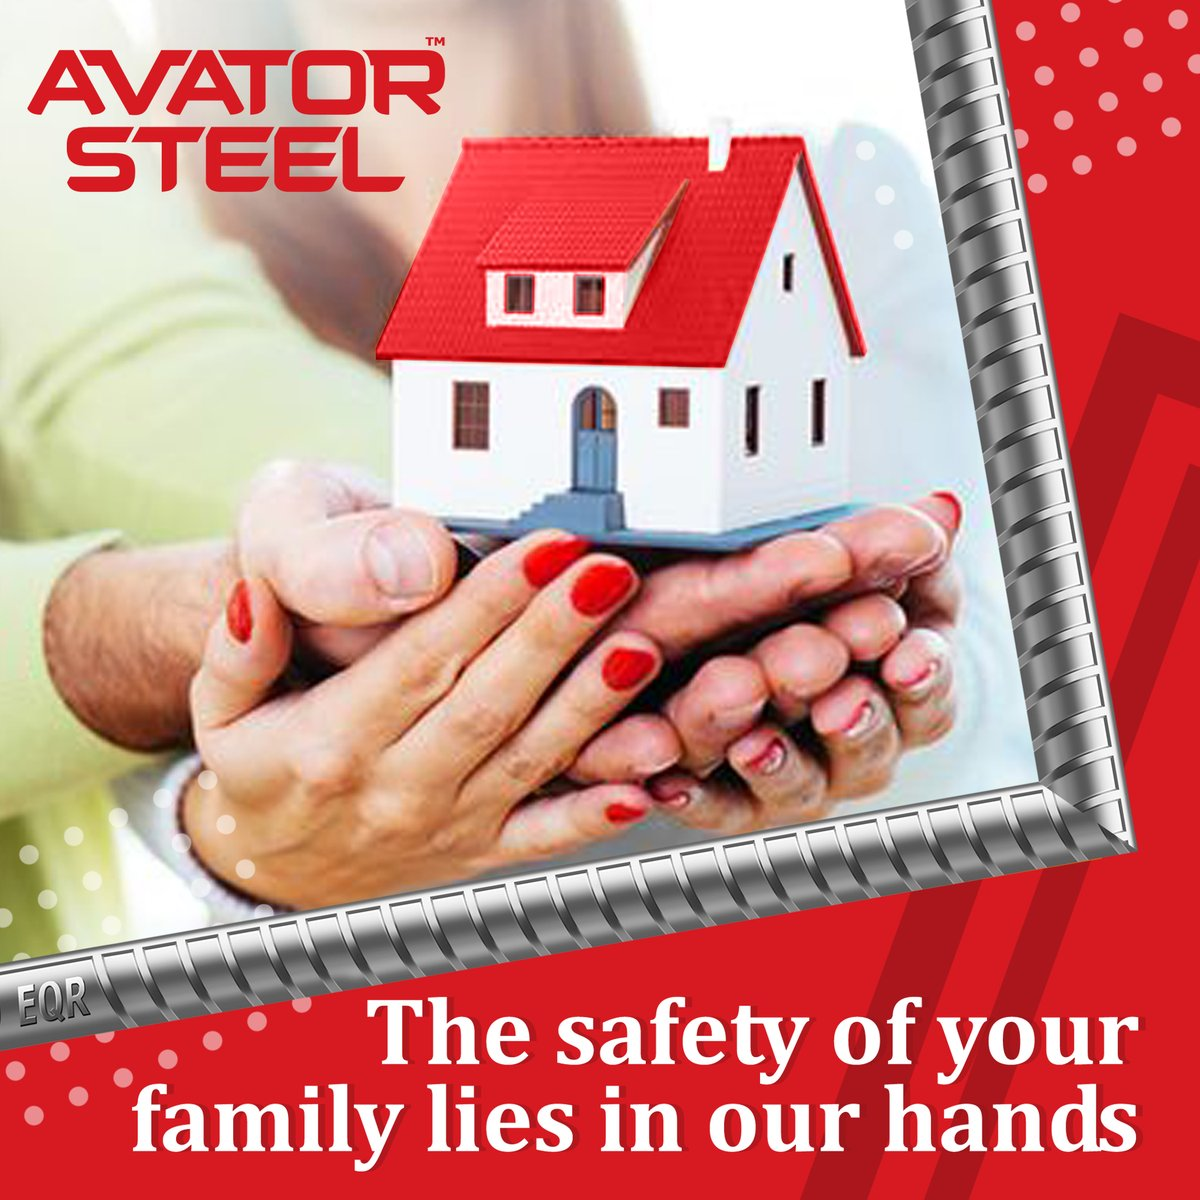 Keeping you and your family safe is our responsibility. So choose #AvatorSteel and build the dream home.